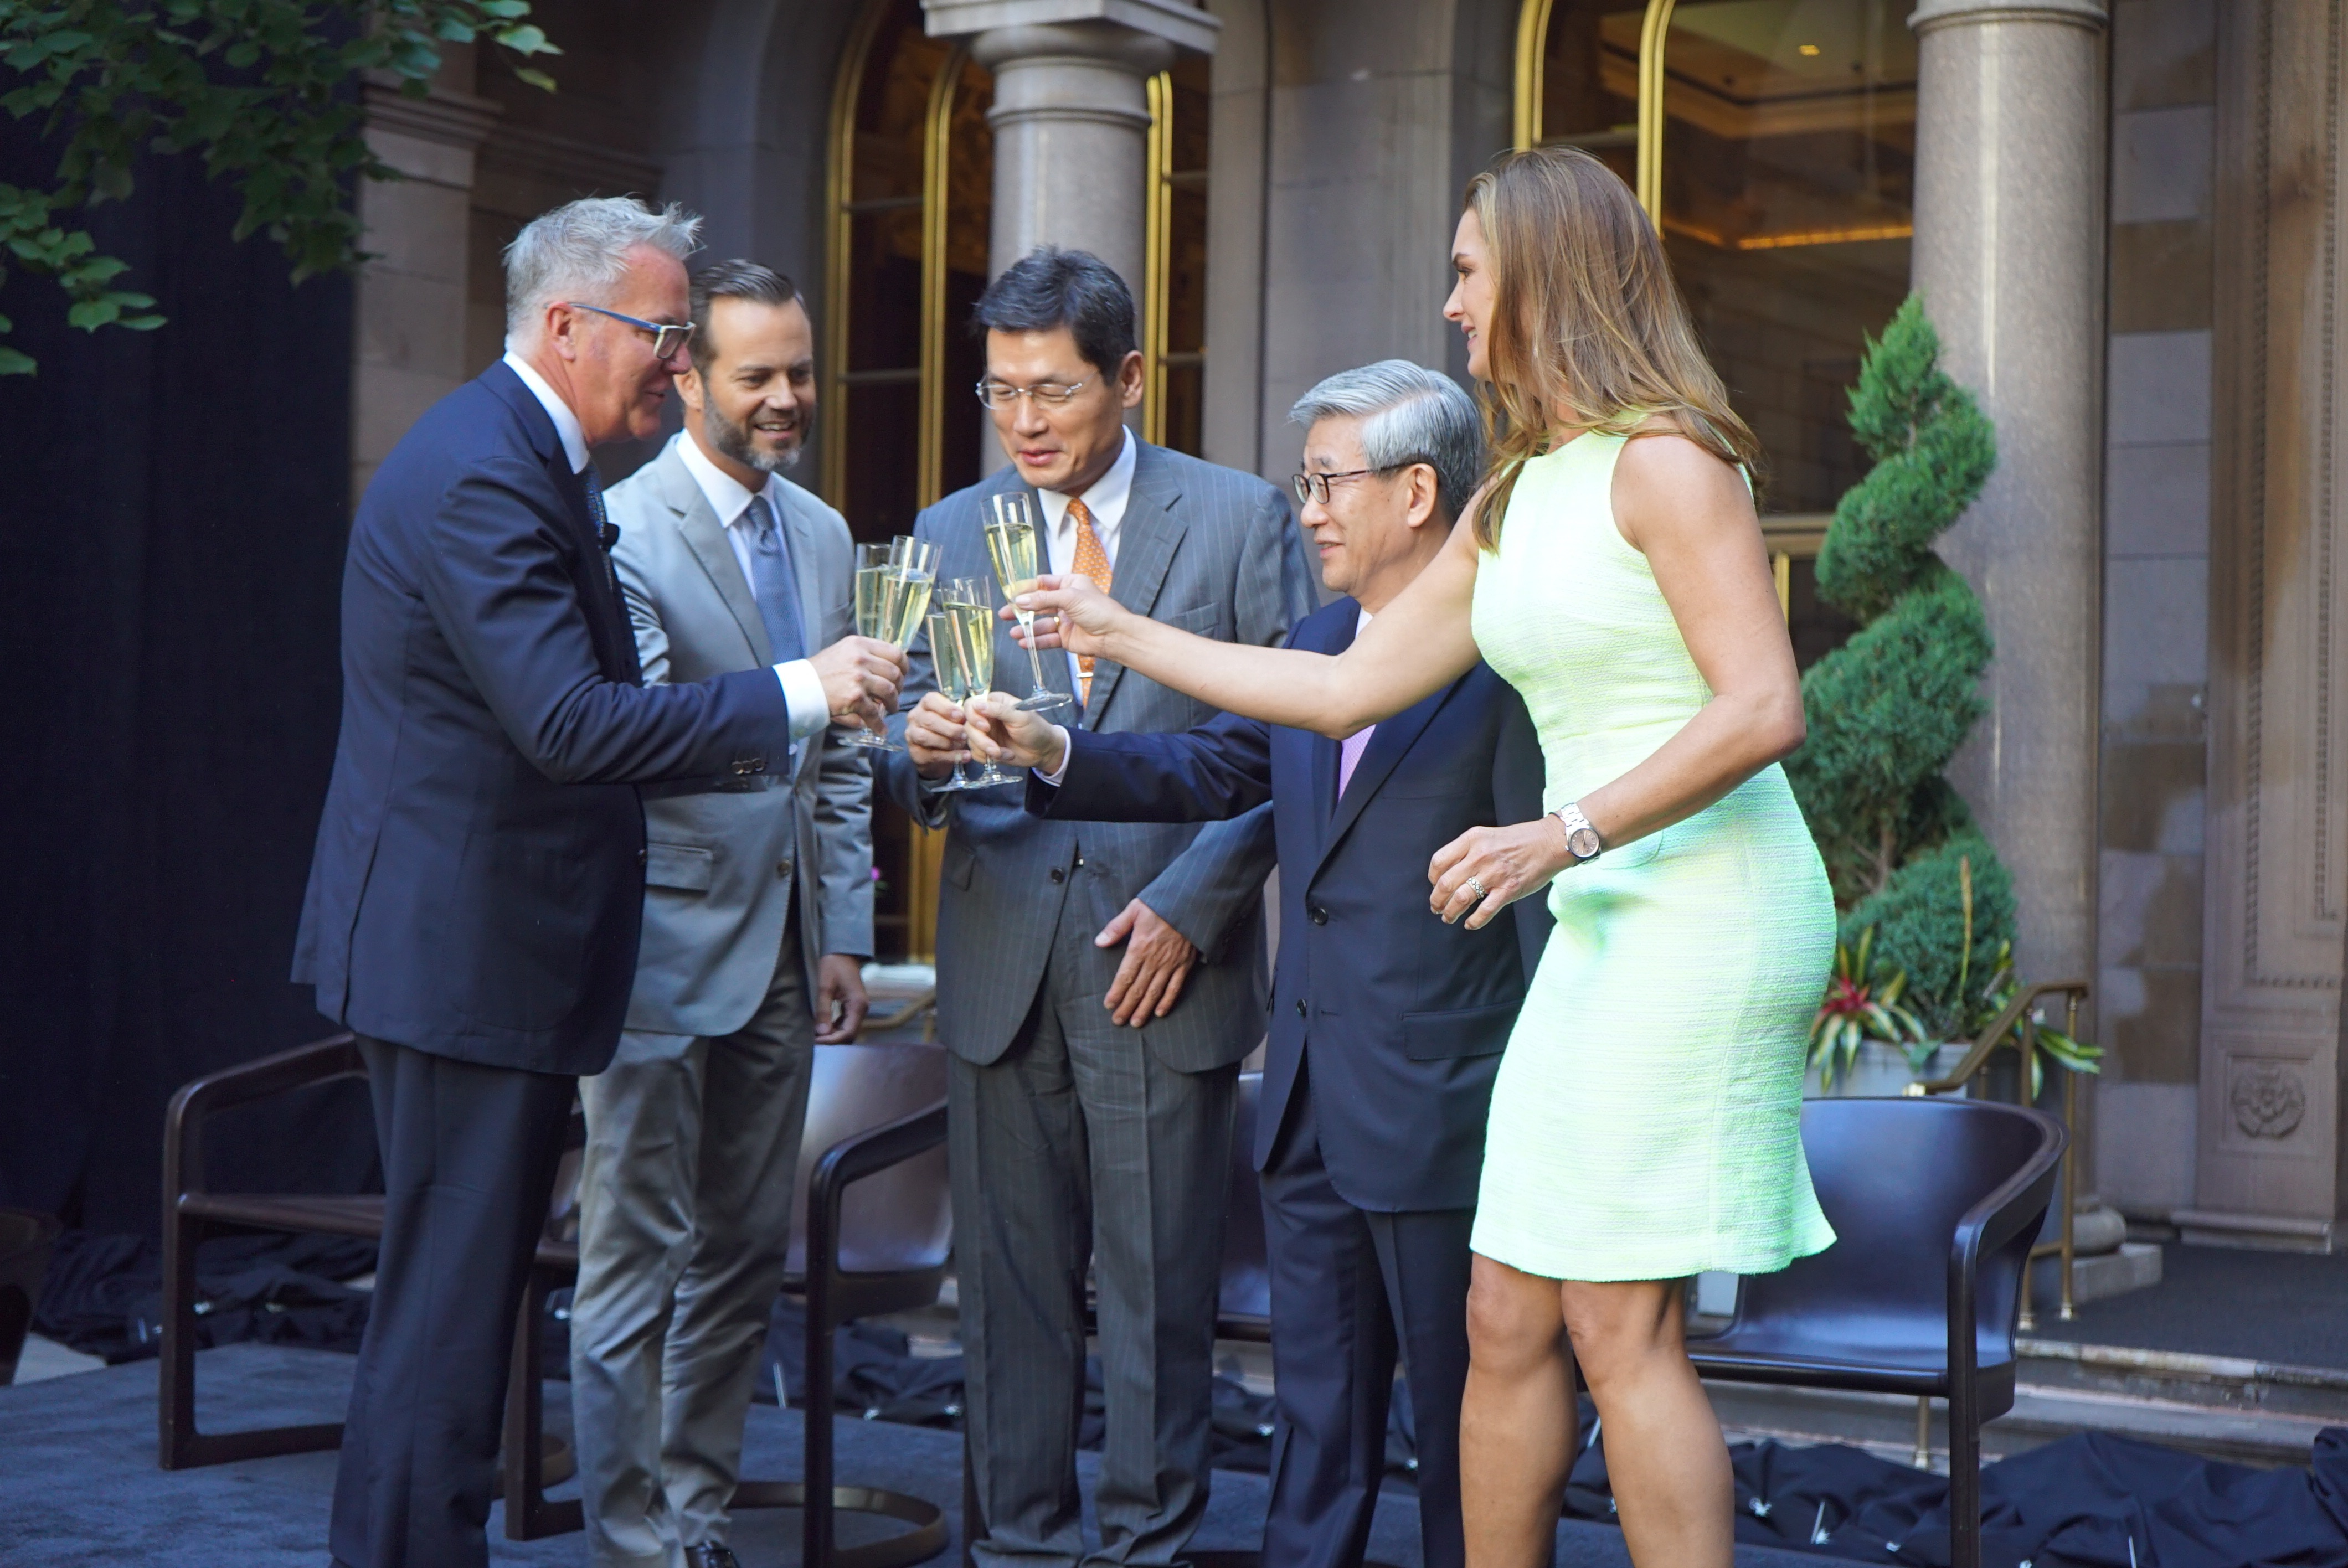 Unveiling Ceremony for Lotte Palace New York Hotel